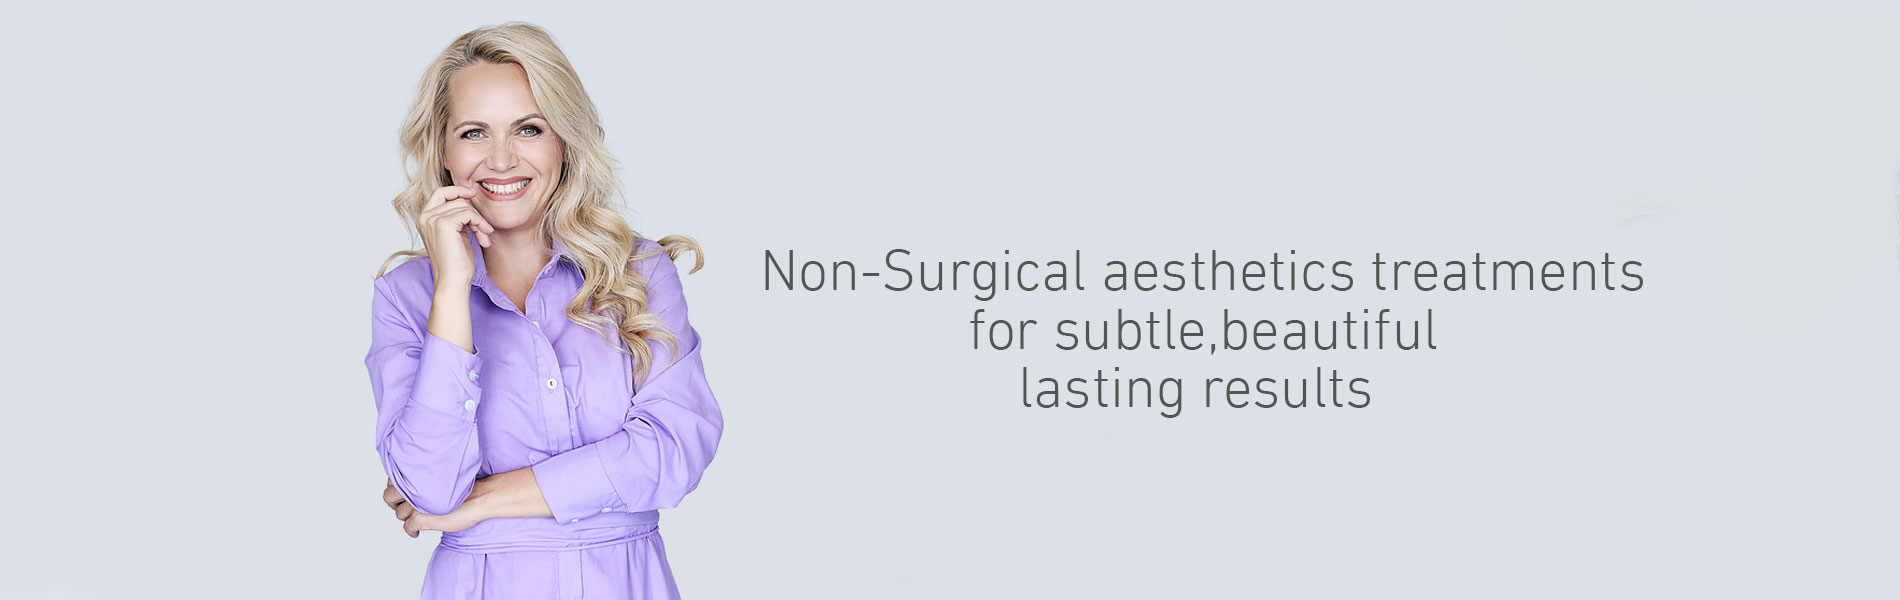 Non-surgical-aesthetics-treatments-for-subtle,-beautiful,-lasting-results Top Aesthetics Clinic in Hampshire - CJA Aesthetics, Southampton